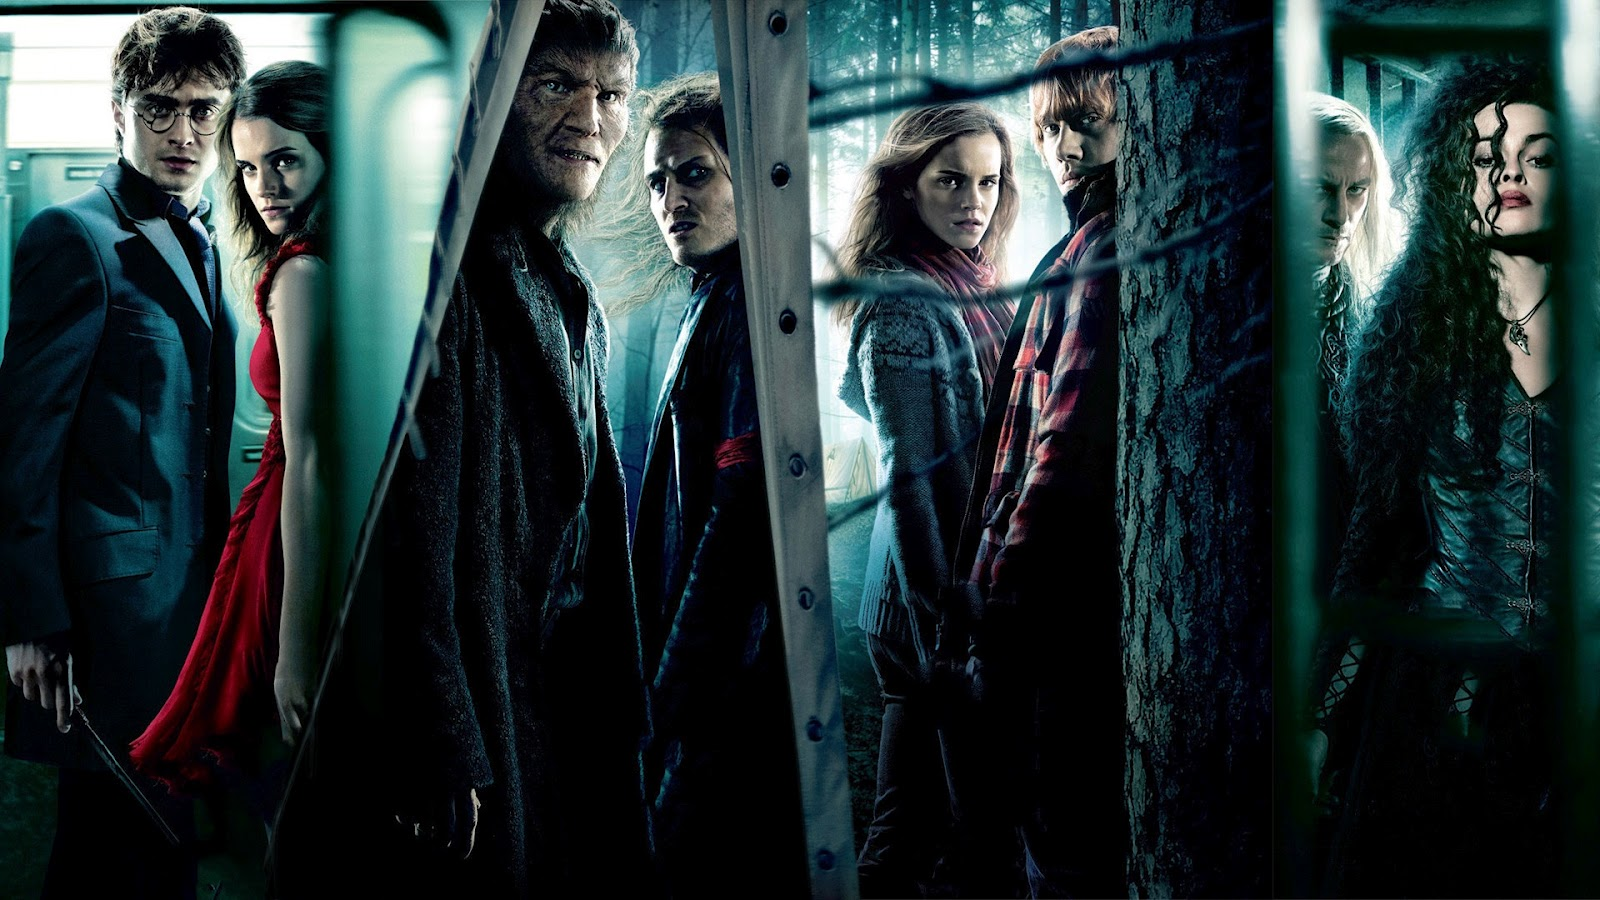 http://1.bp.blogspot.com/-iFmkM8h5erw/UBHzGdcOVaI/AAAAAAAACtM/ccK1XcObN2k/s1600/harry_potter_and_the_deathly_hallows_part_1-1920x1080.jpg